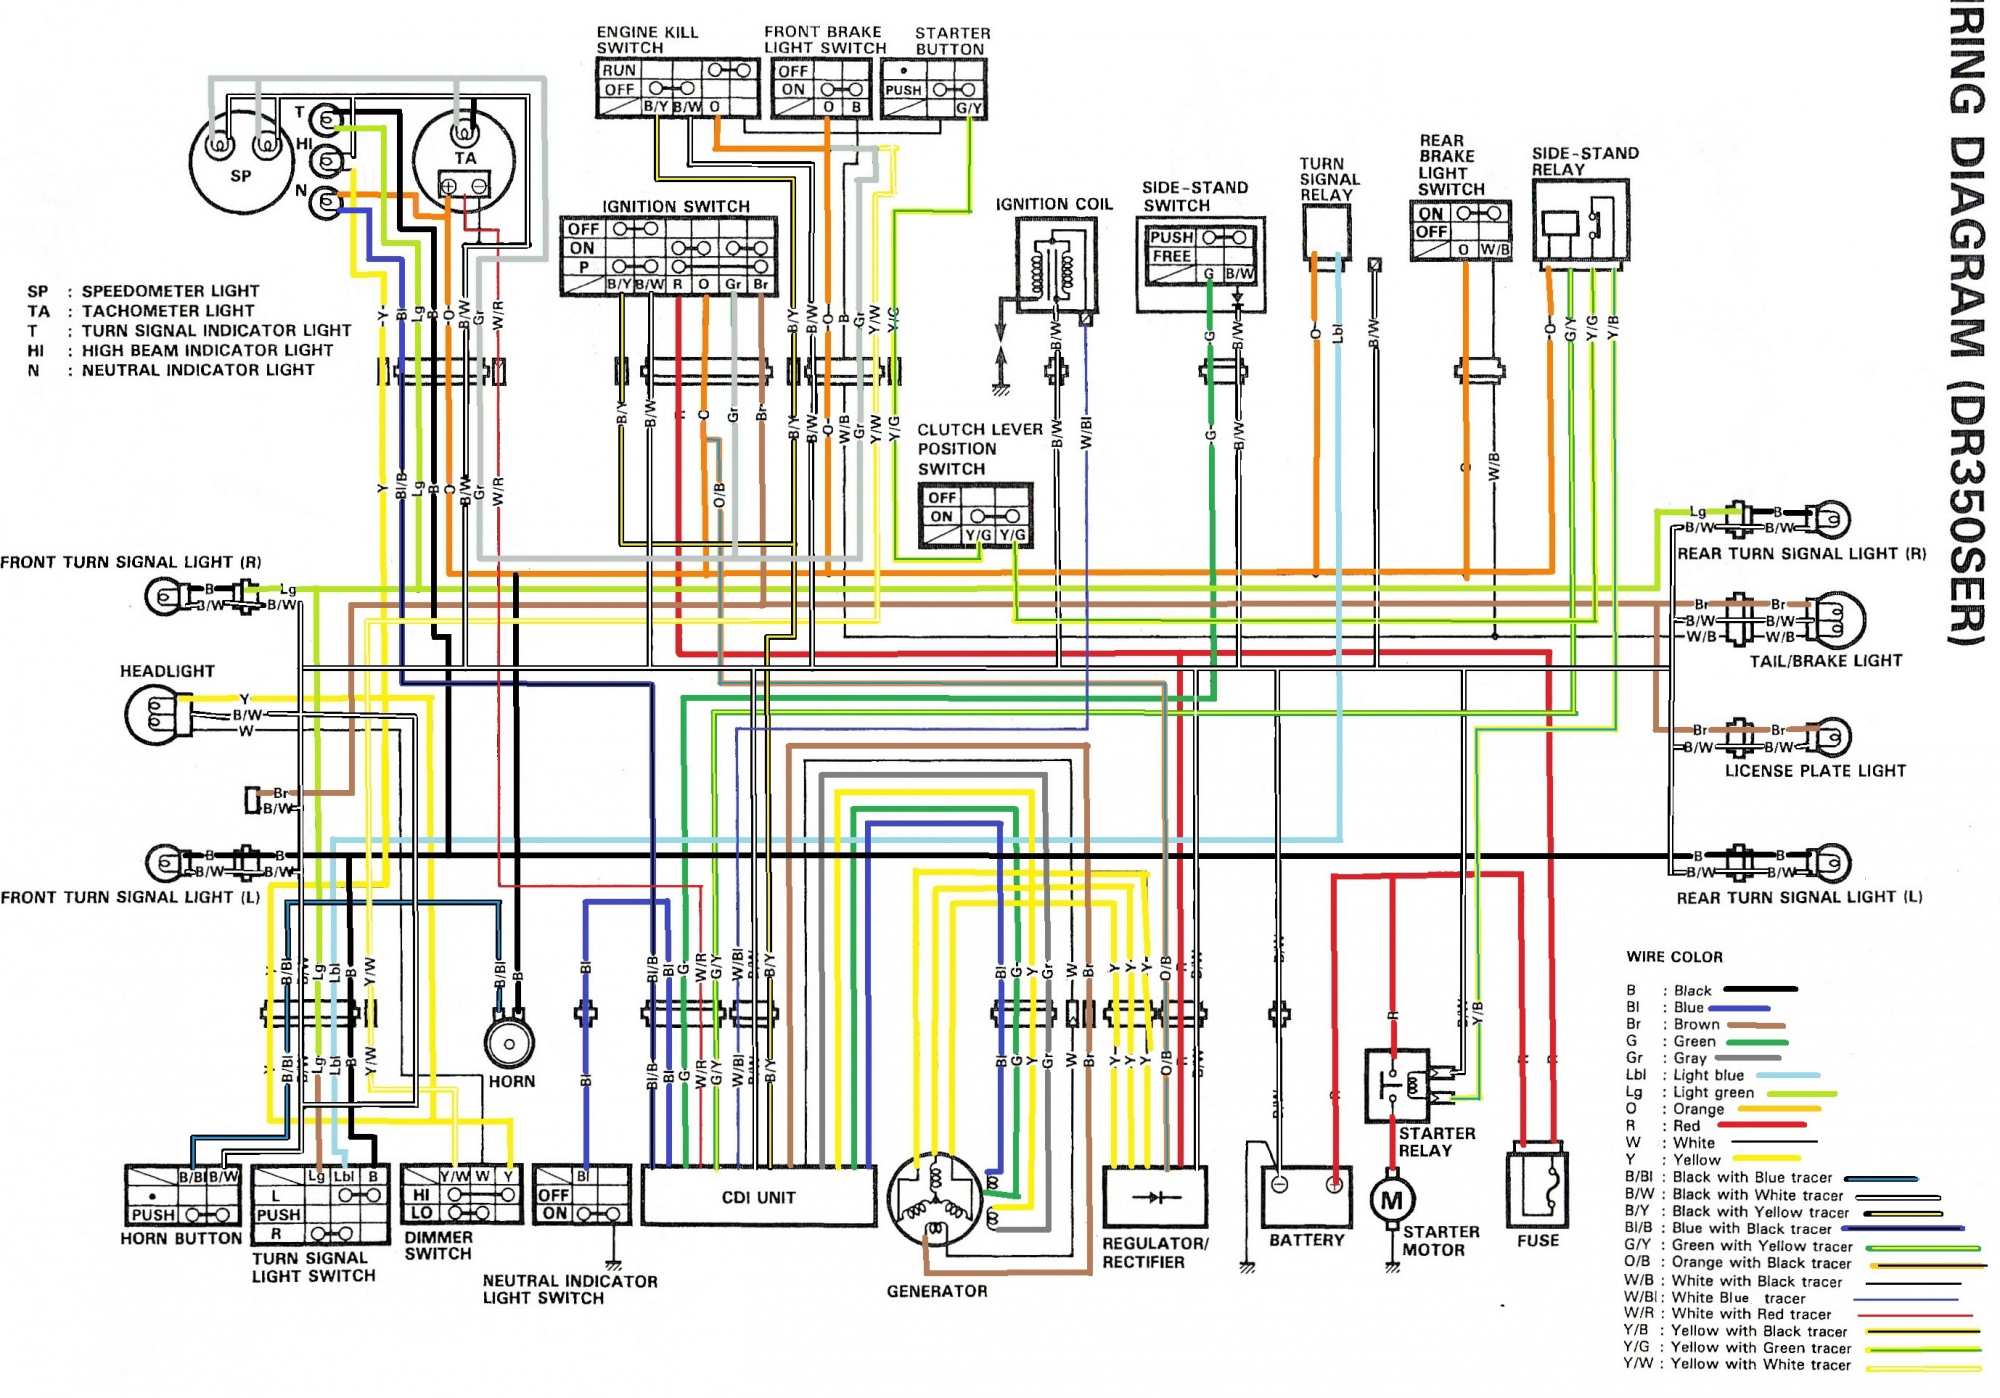 wiring diagram for the dr350 se (1994 and later models) color ladder diagram color wiring diagram for the dr350 se (1994 and later models)